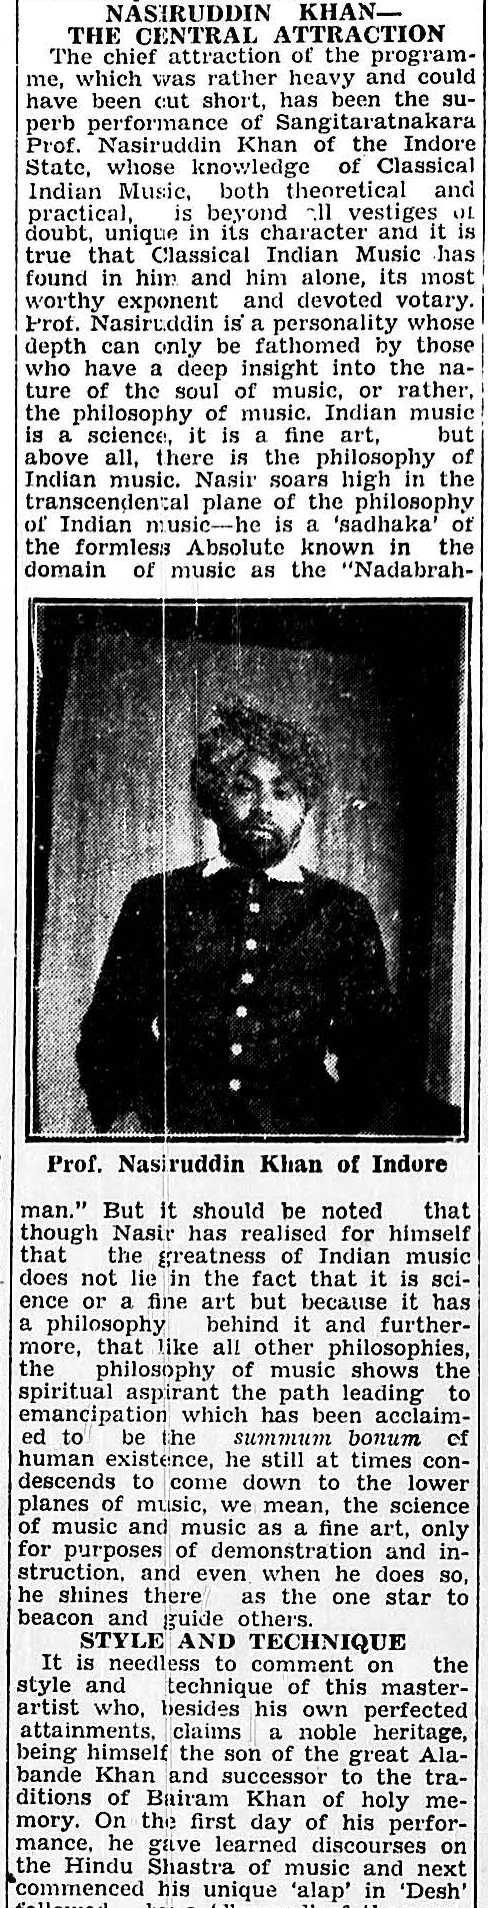 Part of the Review of Nasiruddin Khan's performance at the 2nd All Bengal Conference Calcutta December 1935